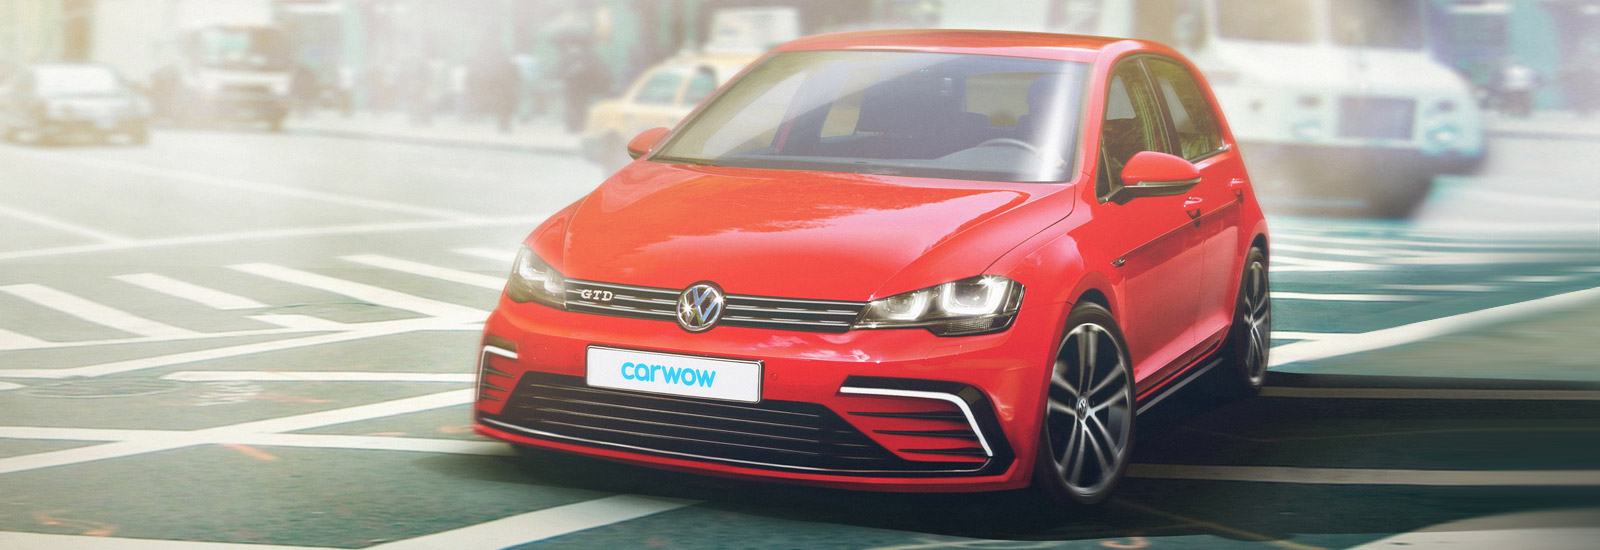 2018 volkswagen e golf release date. interesting date 2019 new vw golf mk8 gtd render by carwow intended 2018 volkswagen e golf release date z